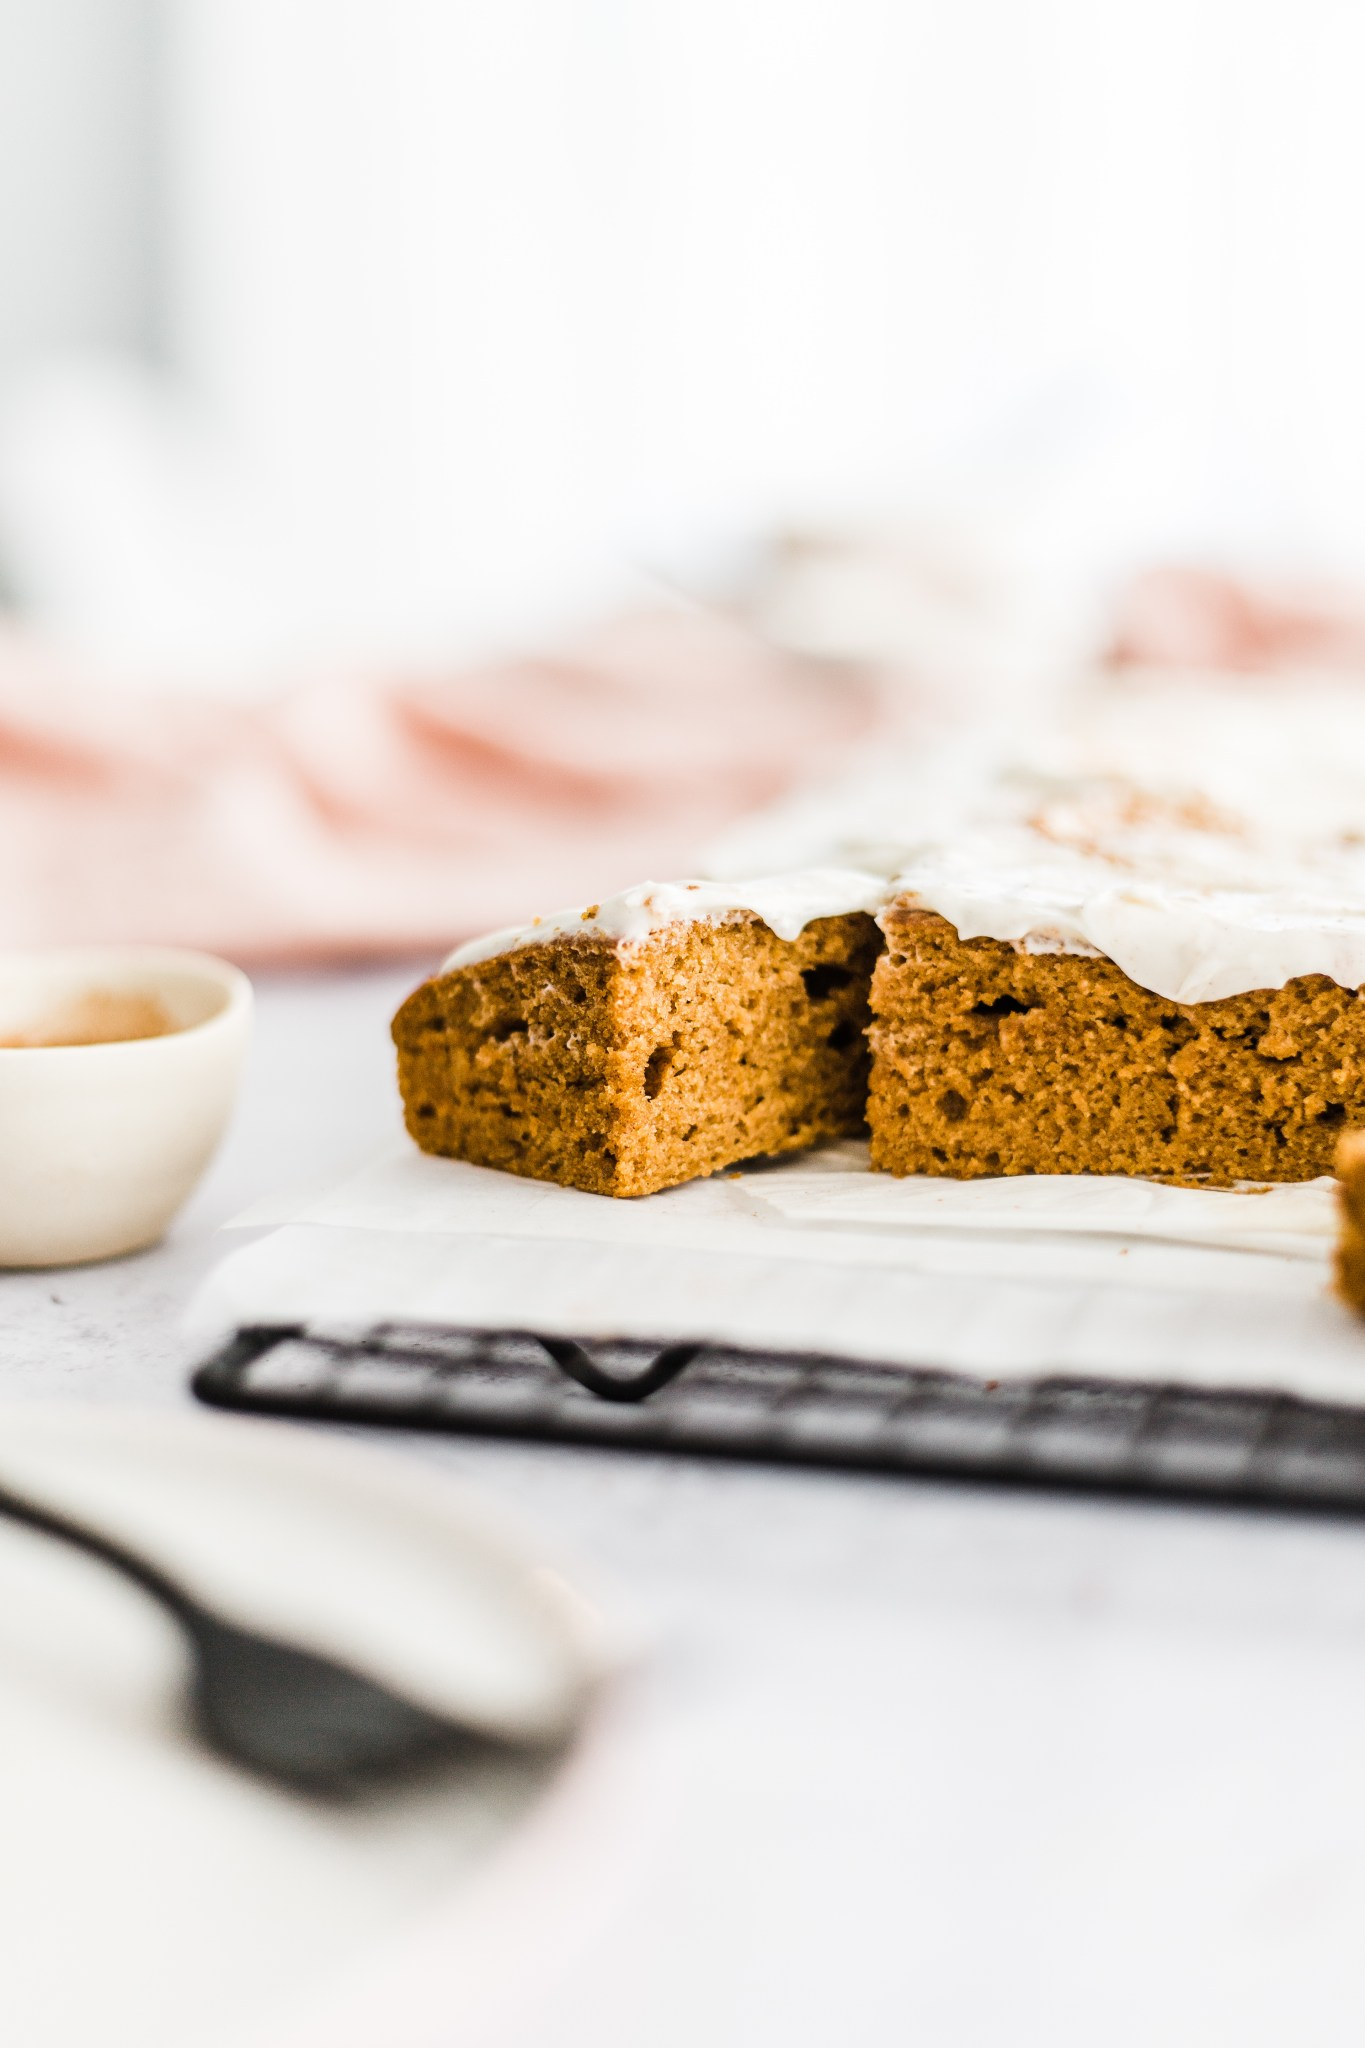 Pumpkin Spice Sheet Cake with Maple-Bourbon Cream Cheese Frosting | #pumpkinspicesheetcake #sheetcake #fallbaking #falldesserts #pumpkin #creamcheesefrosting #pumpkinrecipes